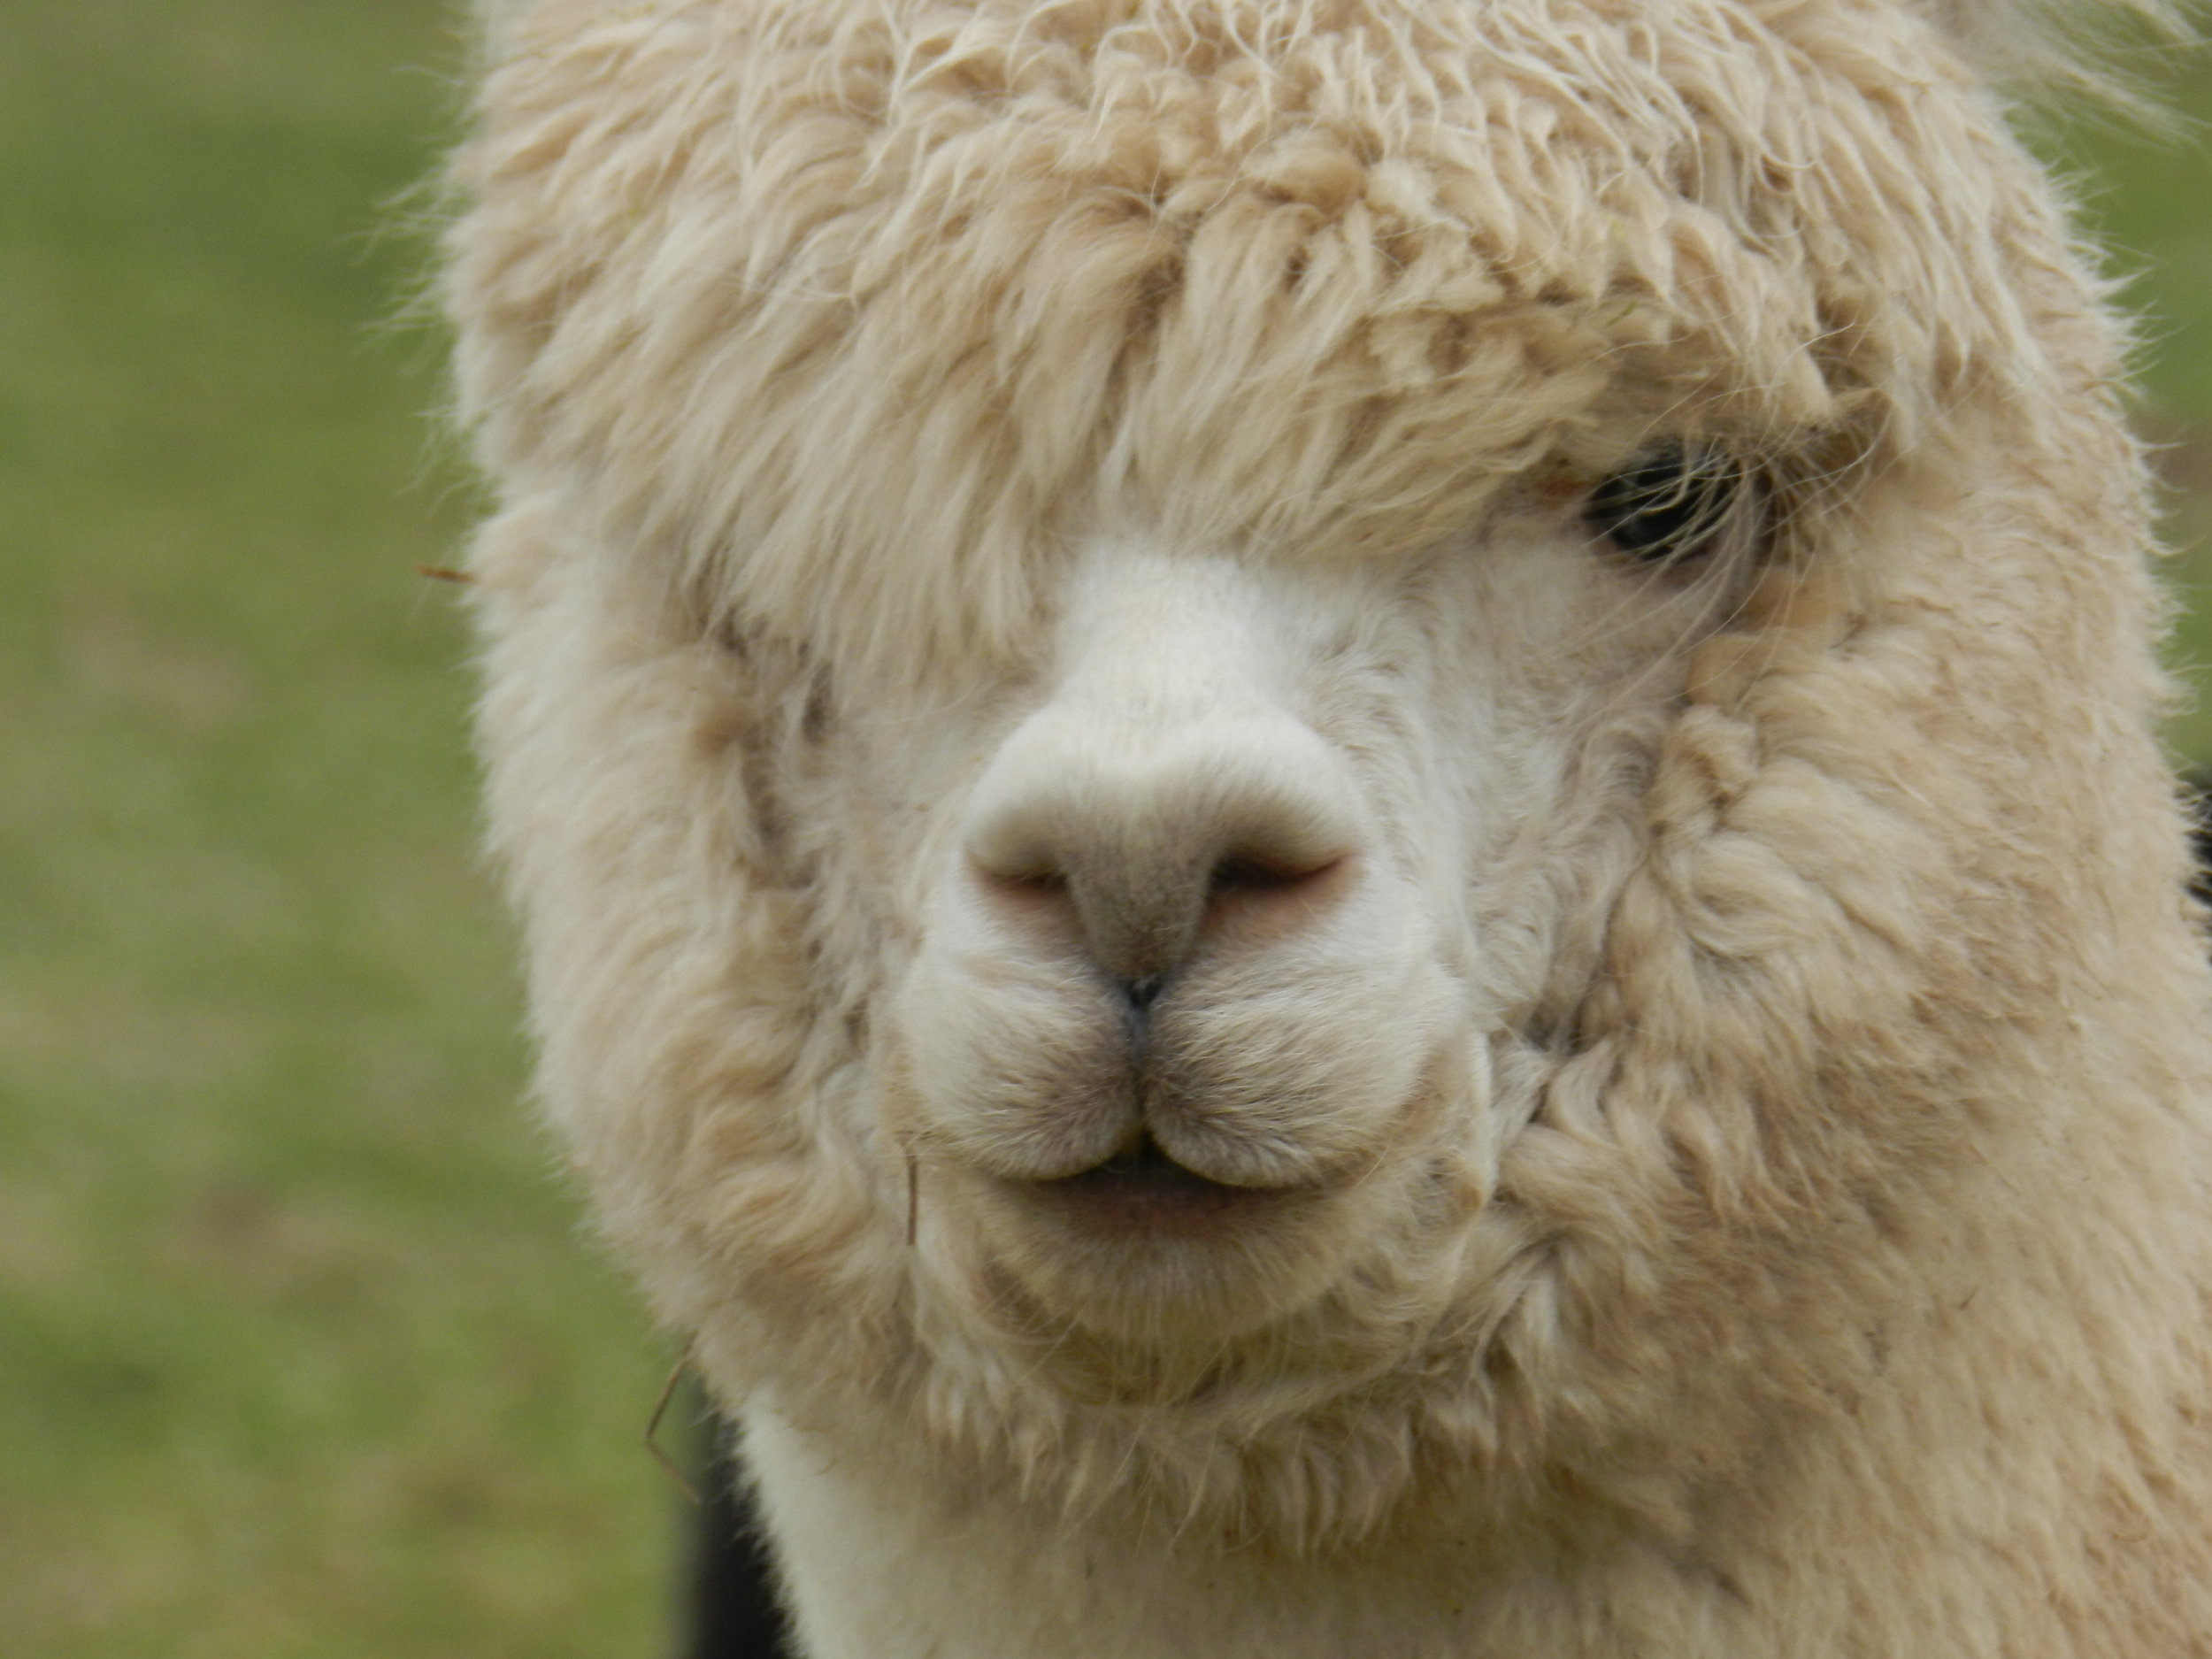 TIME AND TIDE    DOB: 17/06/16    Colour: WHITE    About: tIME AND TIDE HAD HER FIRST MATING IN 2018 AND SHE HAS PROVED TO BE SUCH A FANTASTIC MUM FROM THE ONSET WHEN HER FIRST BABY 'NOTUS' WAS BORN IN MAY 2019. TIME AND TIDE IS A VERY CHILLED OUT ALPACA AND LOVES A GOOD NECK SCRATCH